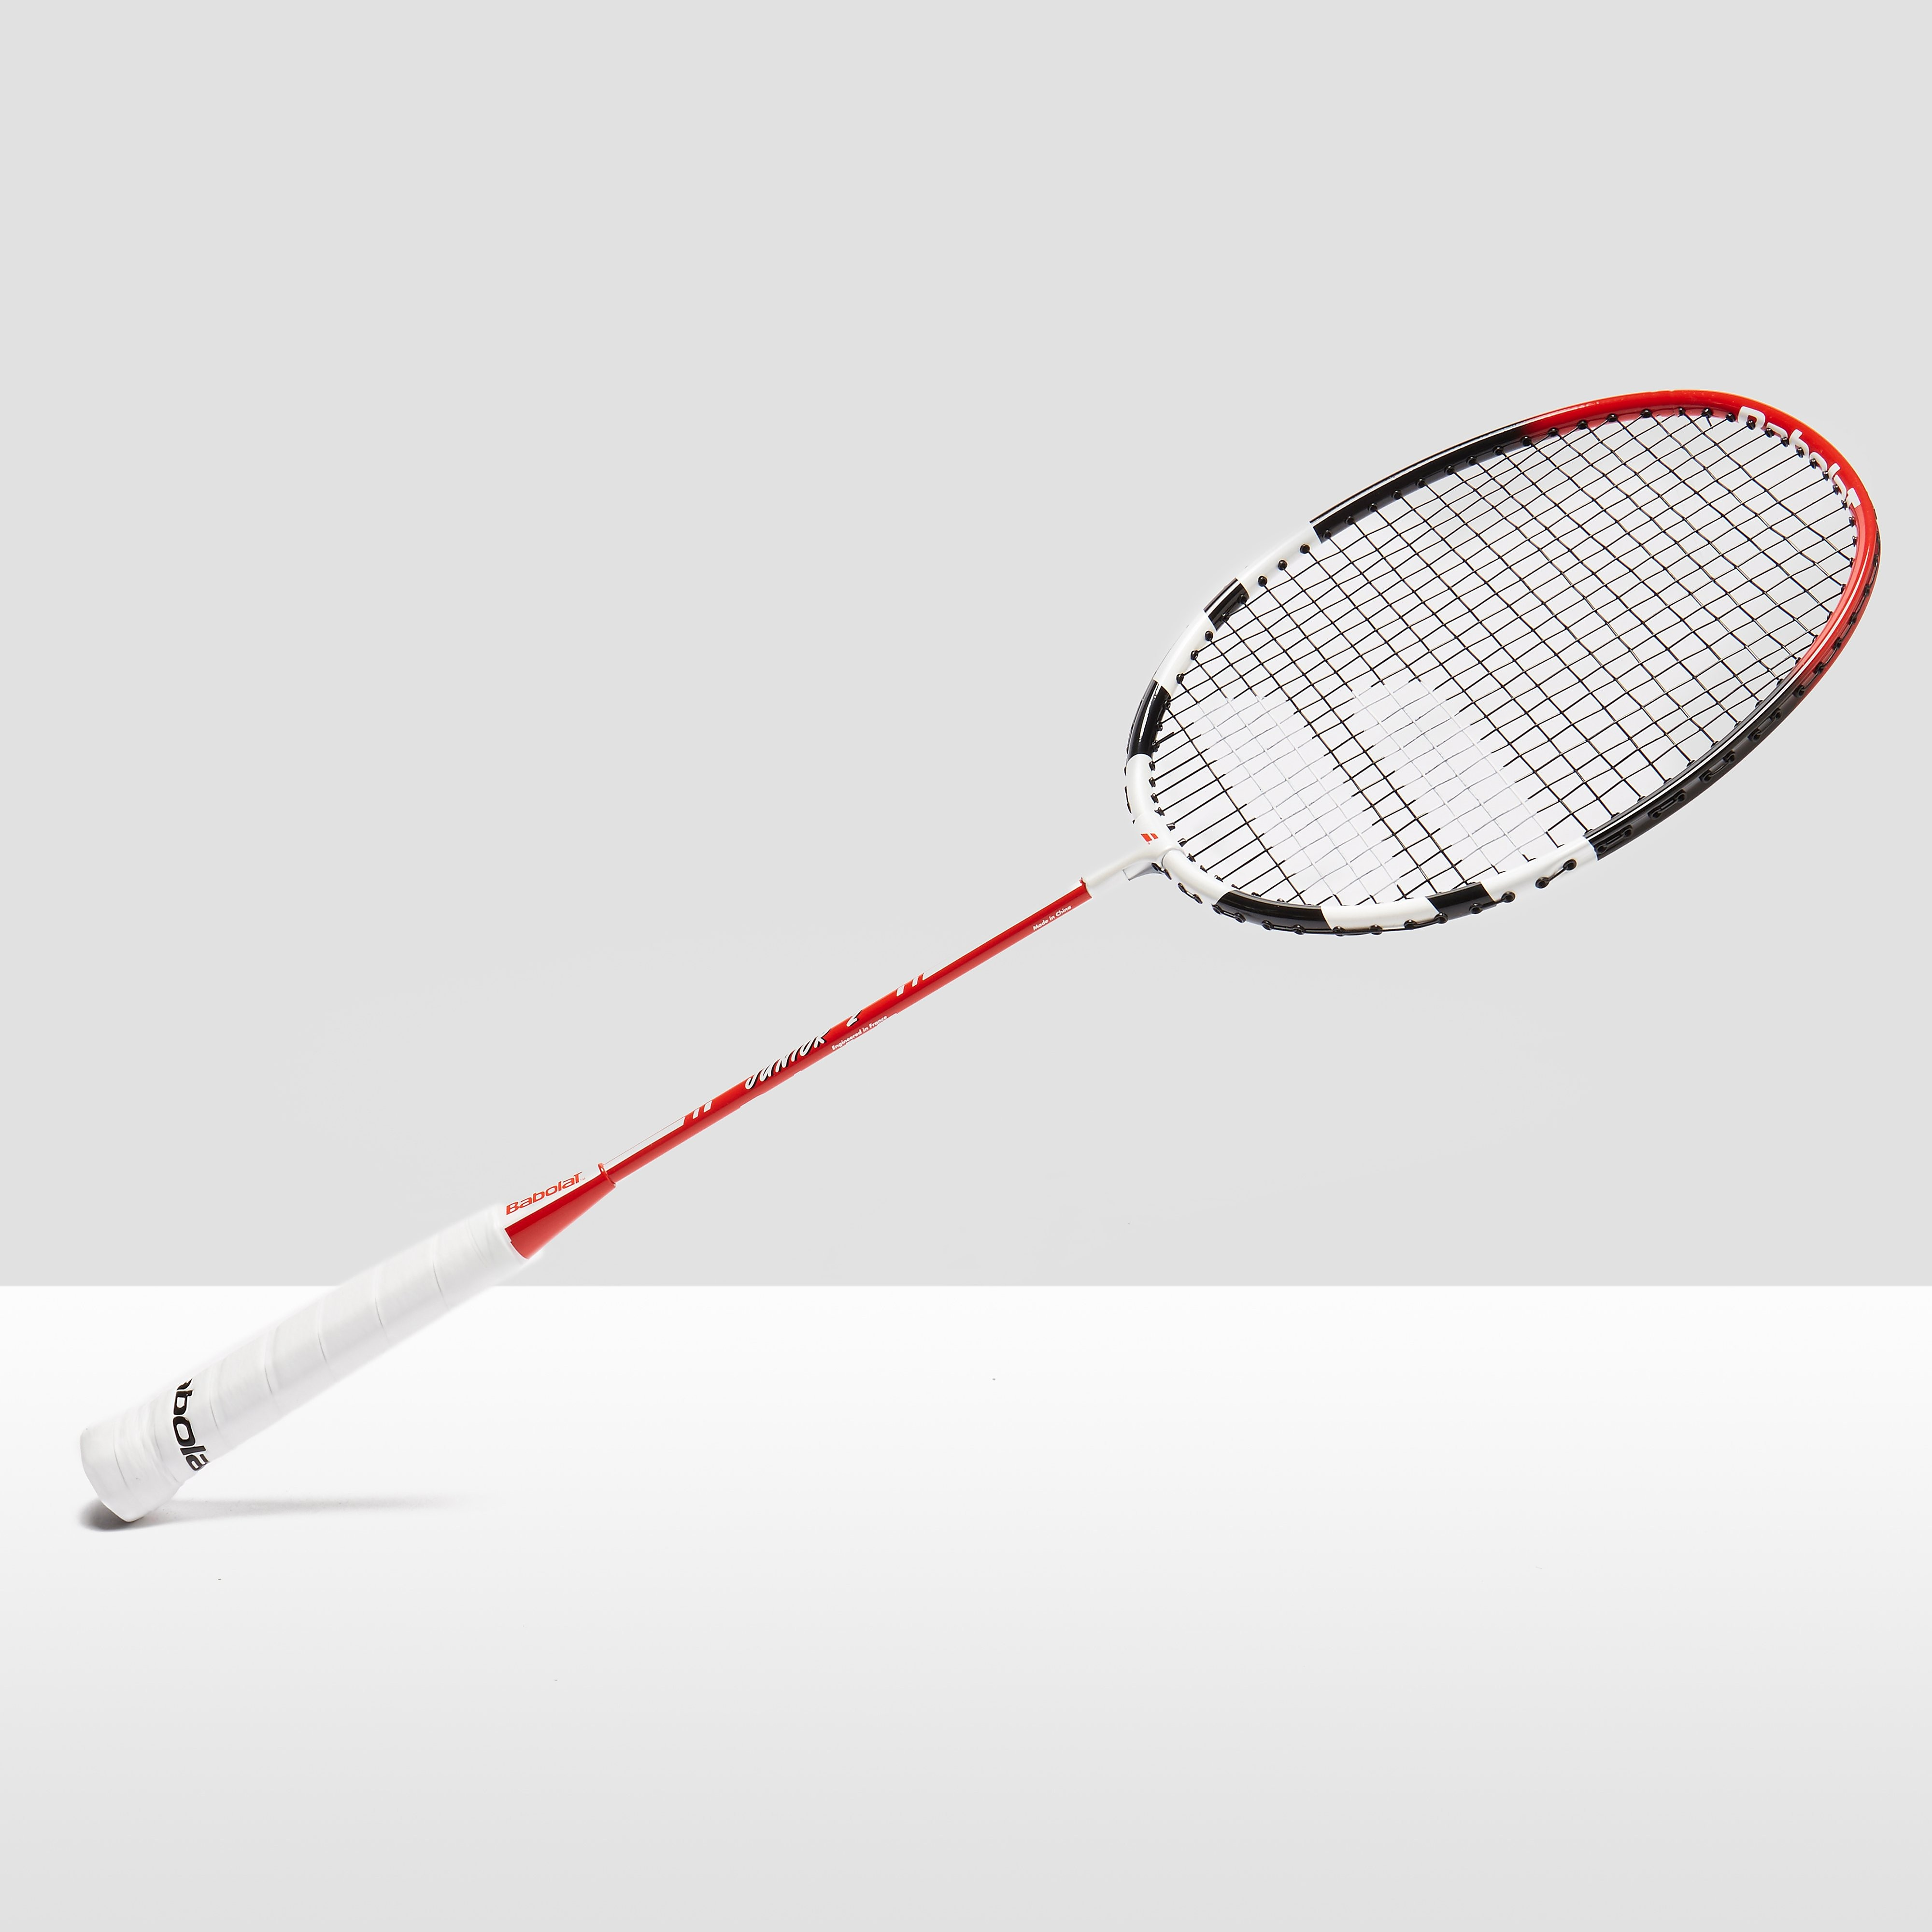 Babolat 2 Junior Badminton Racket